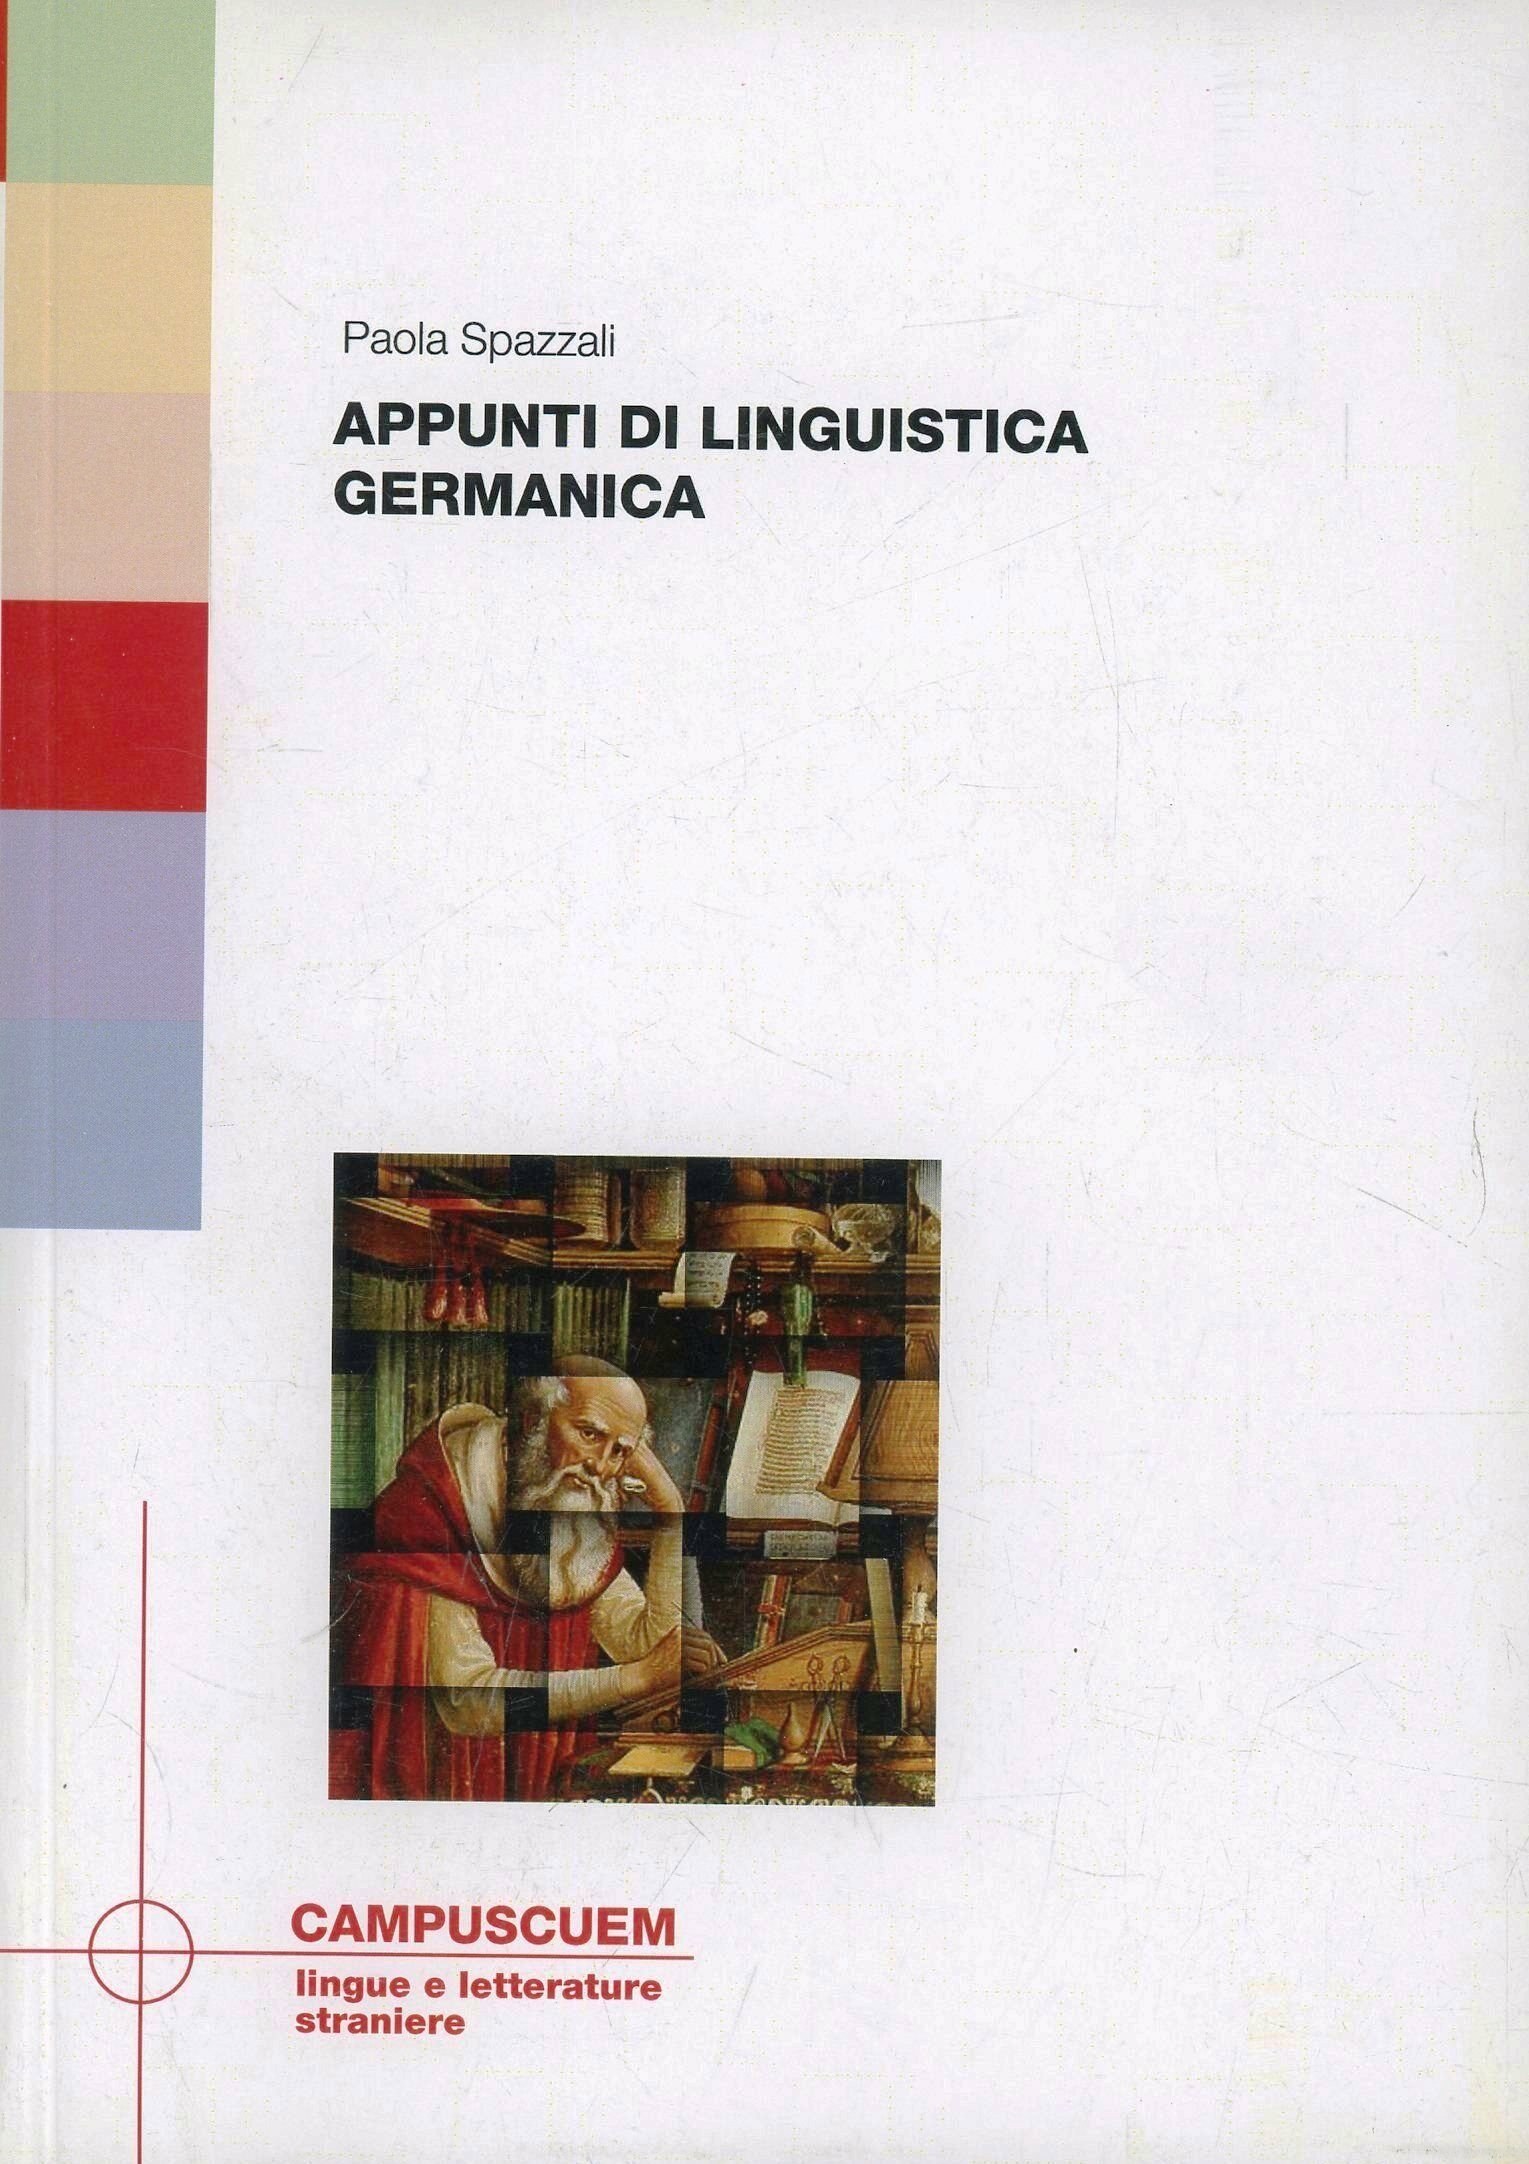 Appunti di linguistica germanica